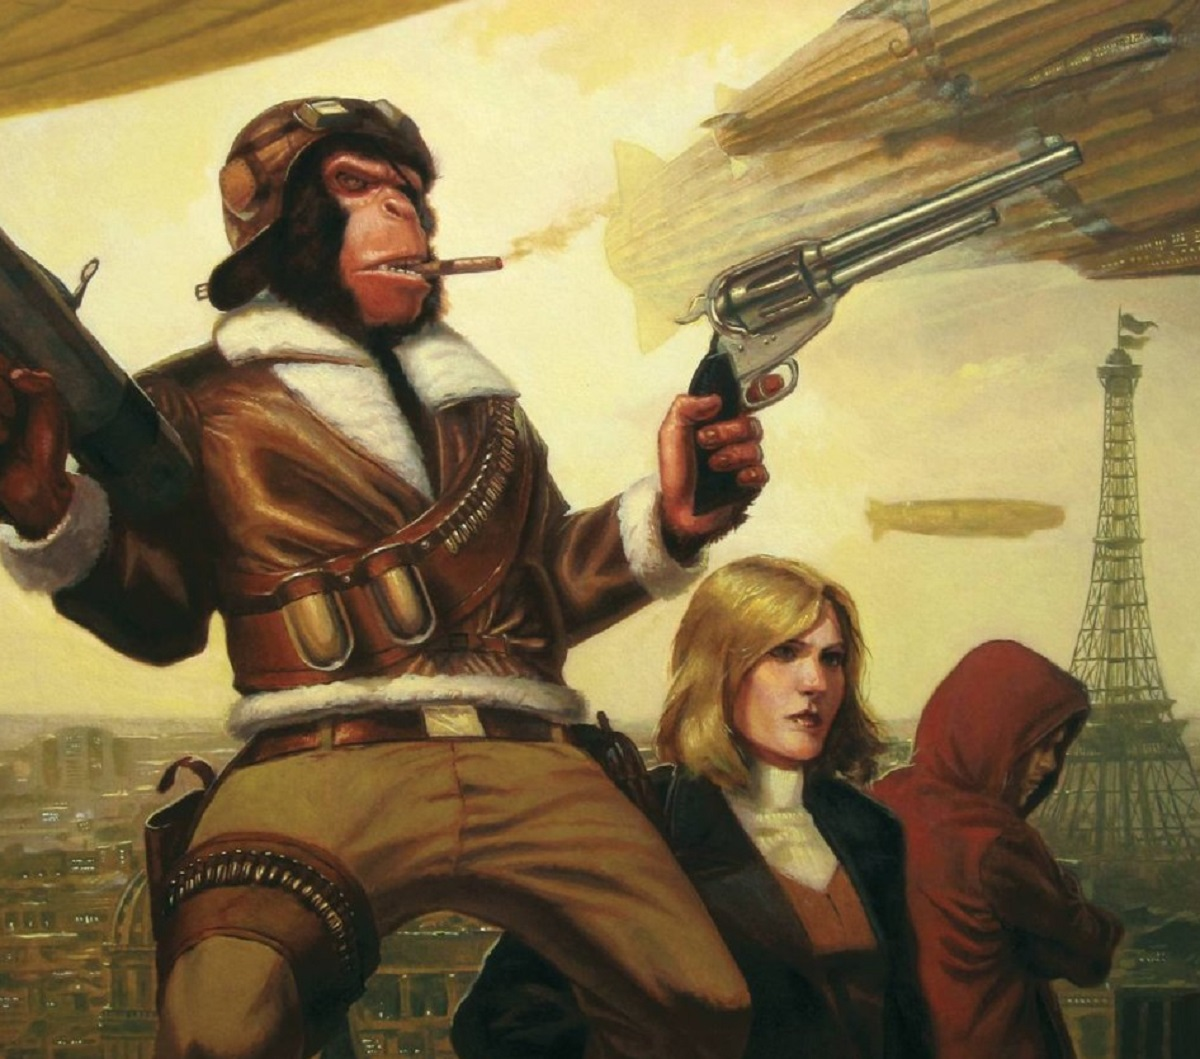 Cover of Ack Ack Macaque by British science fiction steampunk author Gareth L Powell published by Solaris